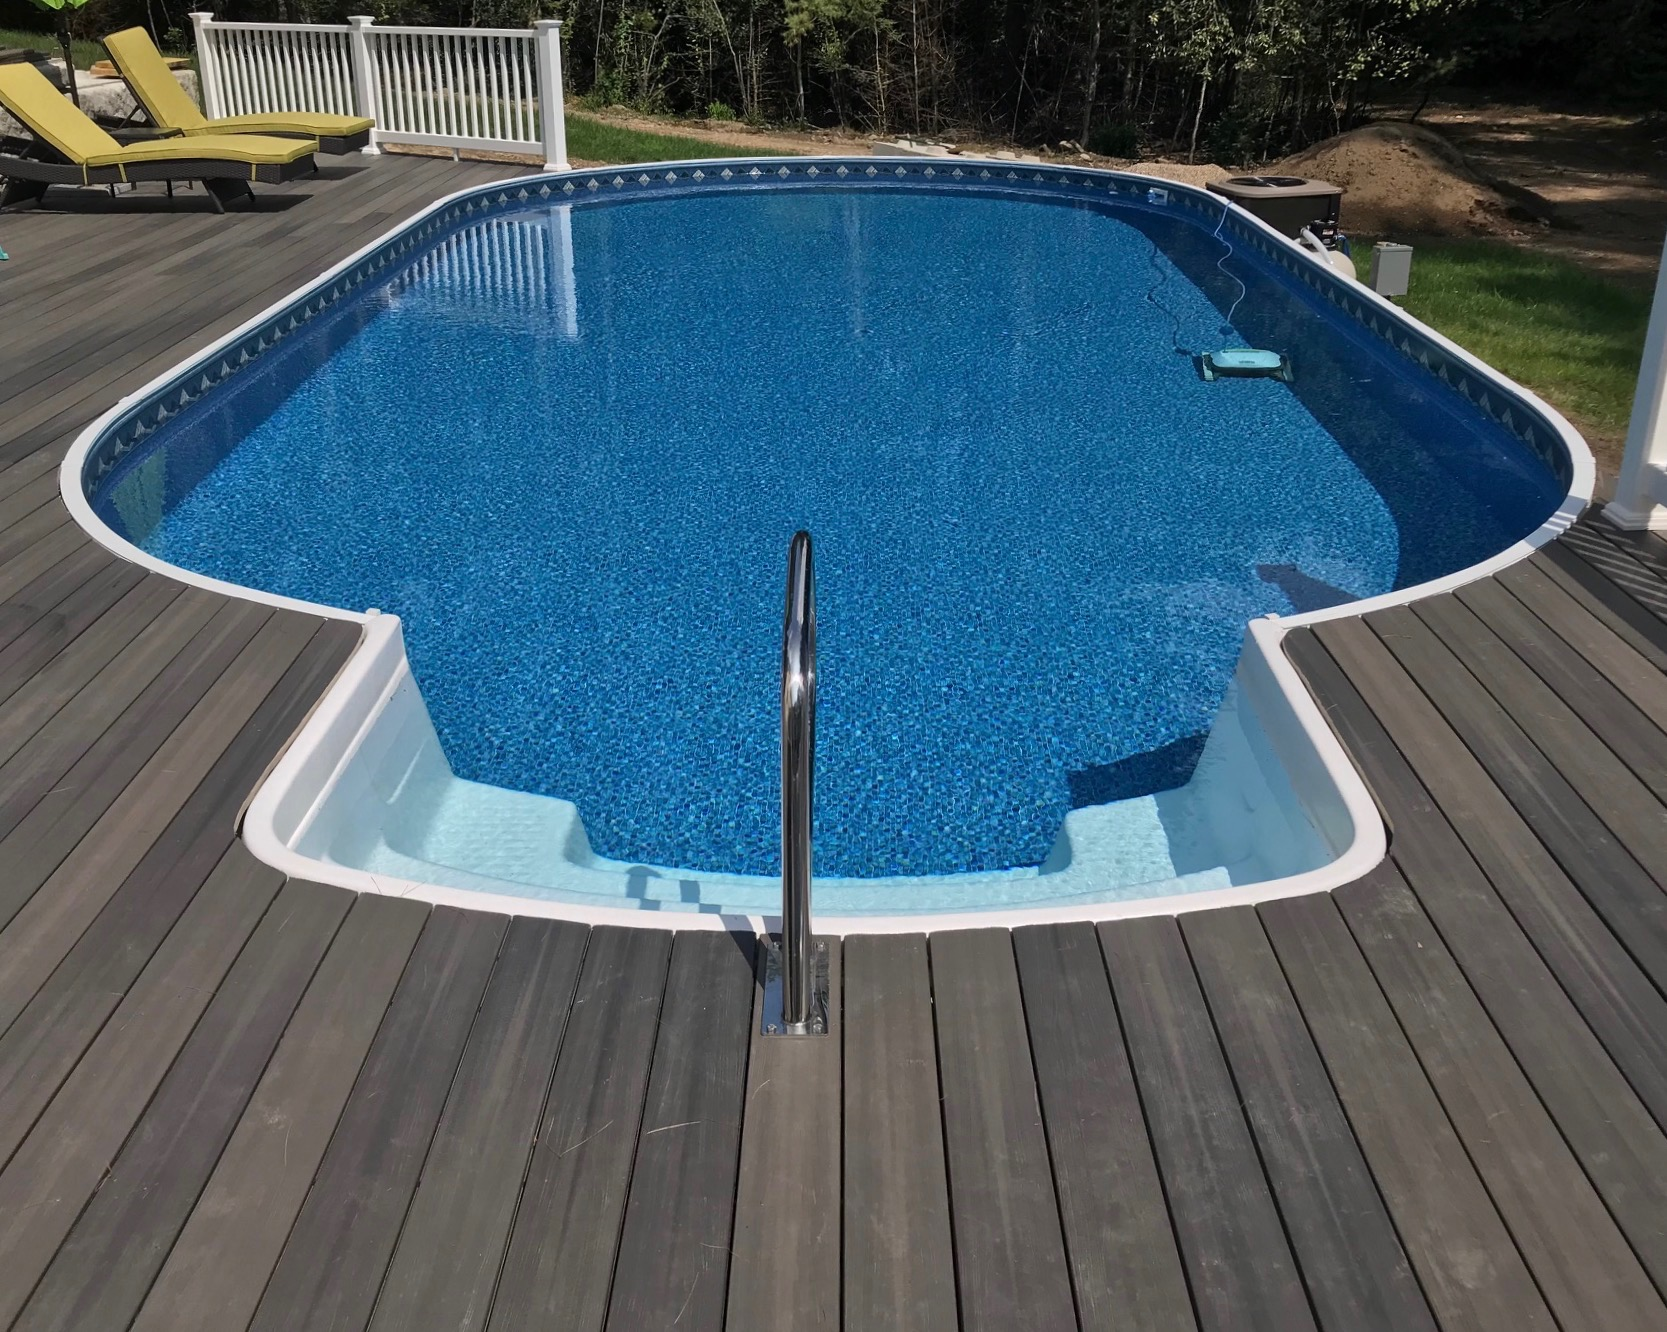 16'x32' Radiant Metric Oval with Thermoplastic Step